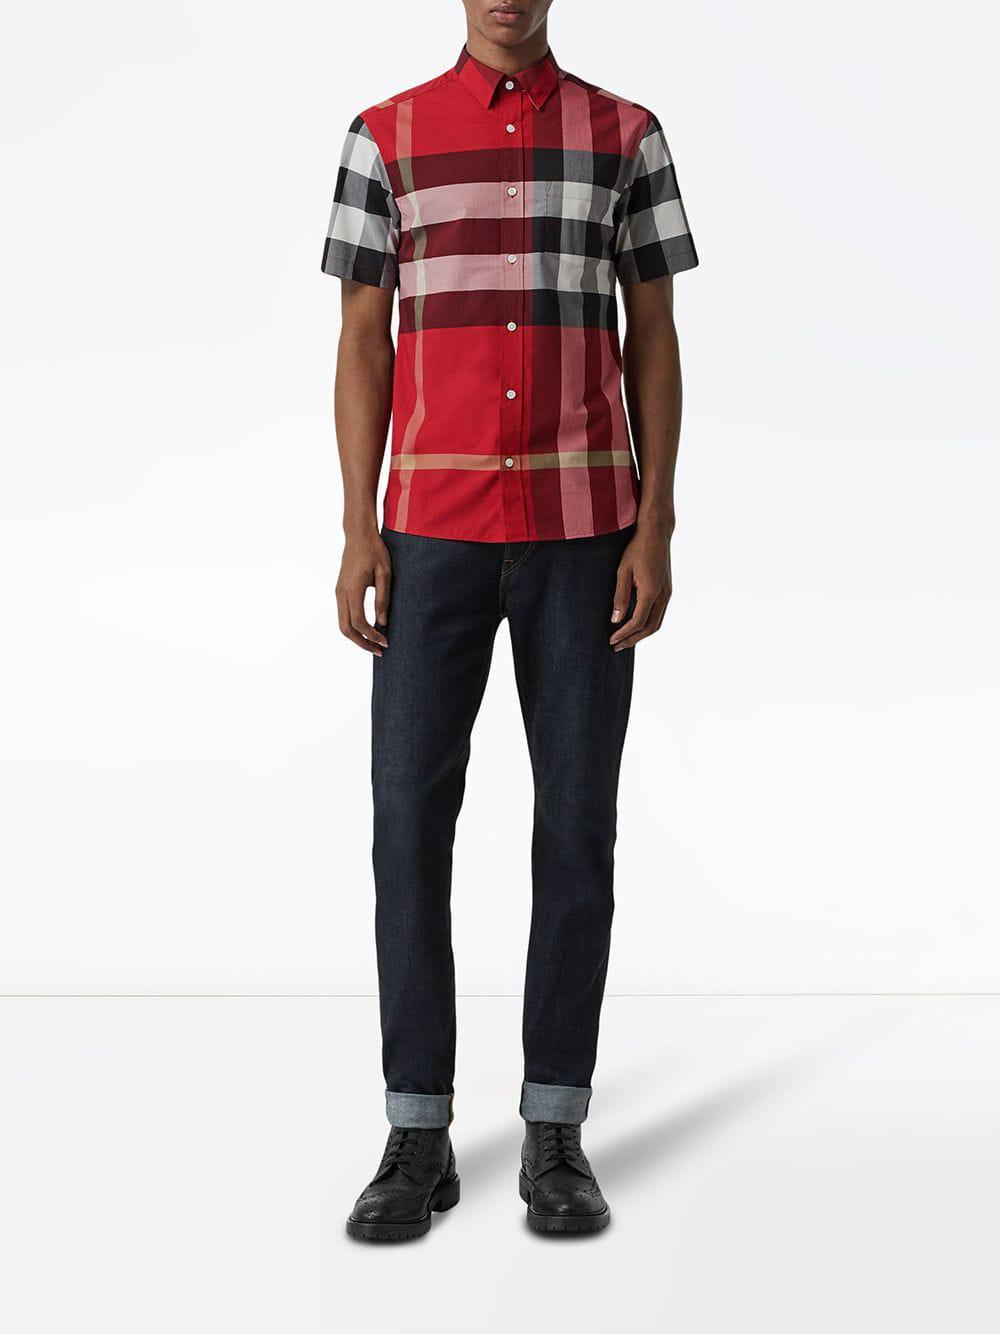 9aeab6a0a1c9 Lyst - Burberry Short-sleeve Check Stretch Cotton Shirt in Red for Men -  Save 17%